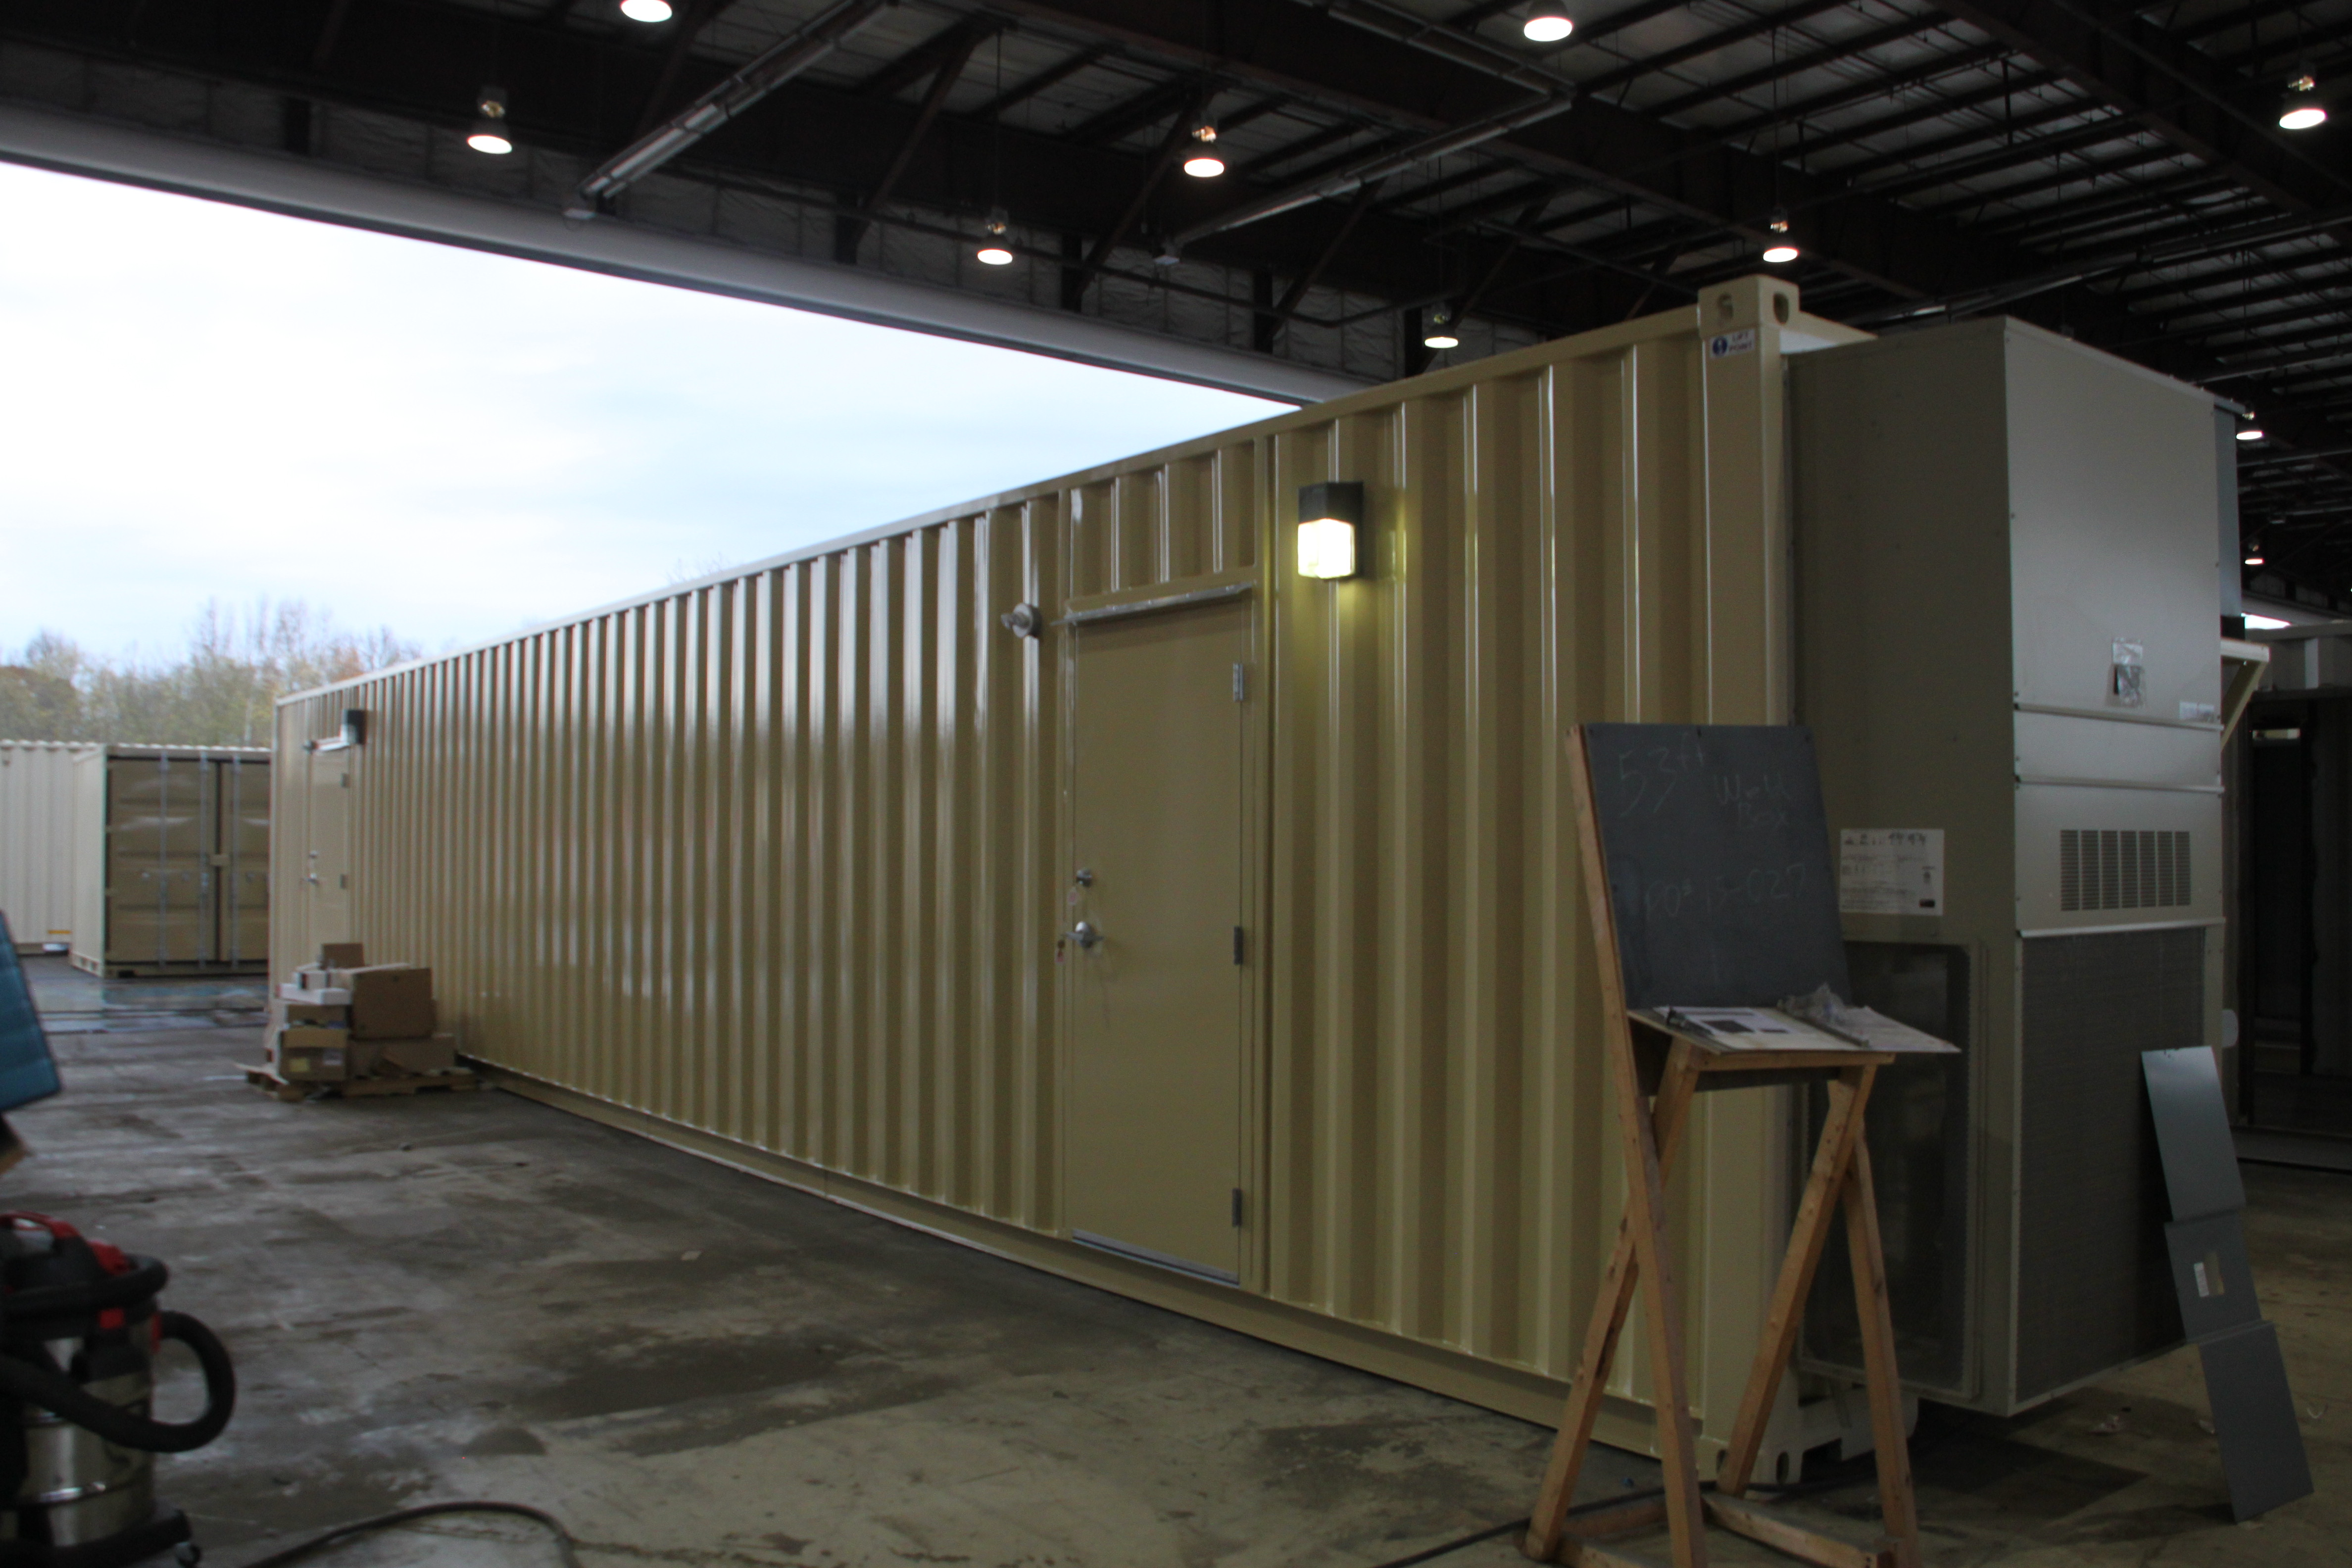 DropBox Inc, shipping container modifications, shipping container modifications company, custom shipping container modification, custom ISO shipping container modification, ISO shipping container modification